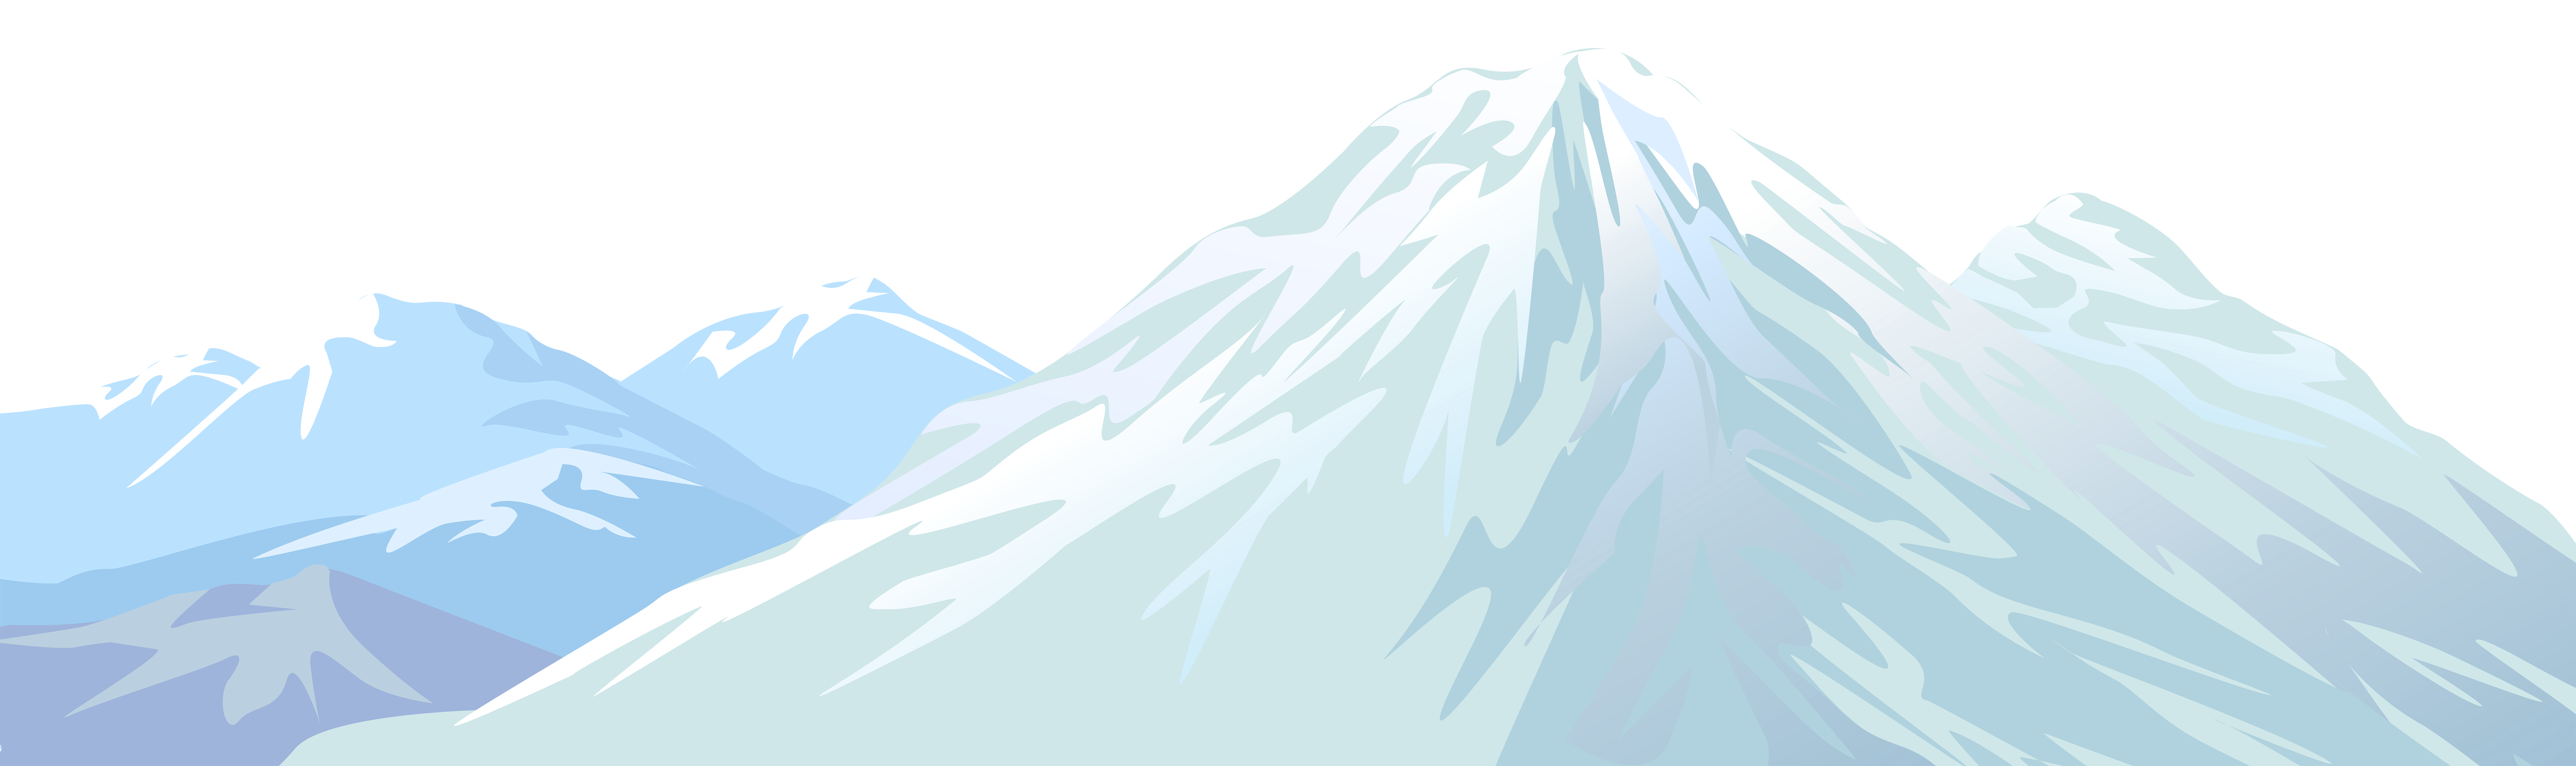 Mountain sun clipart banner library library Winter Snowy Mountain Transparent PNG Clip Art Image | Gallery ... banner library library